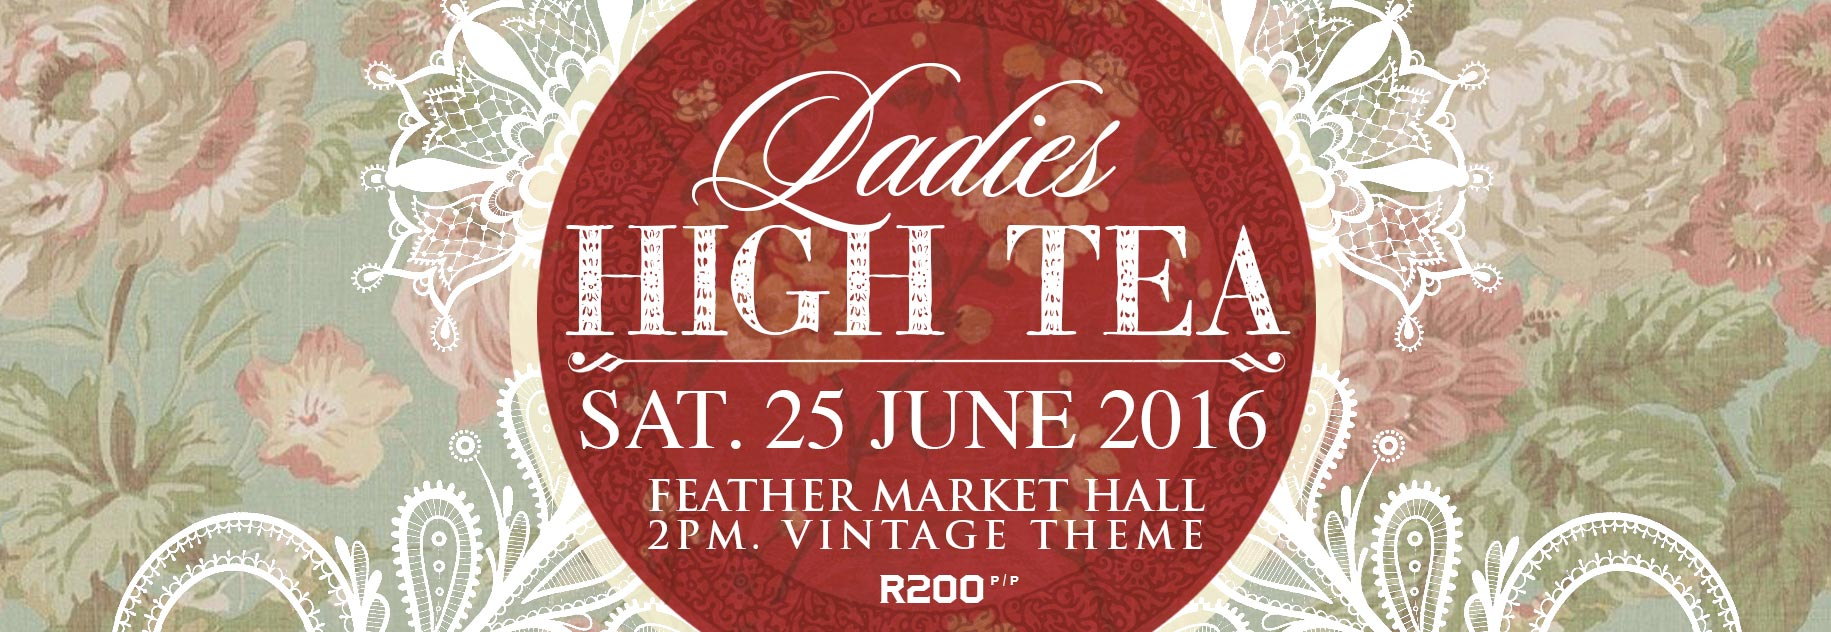 LADIES-HIGH-TEA-VMI-SITE-BANNER